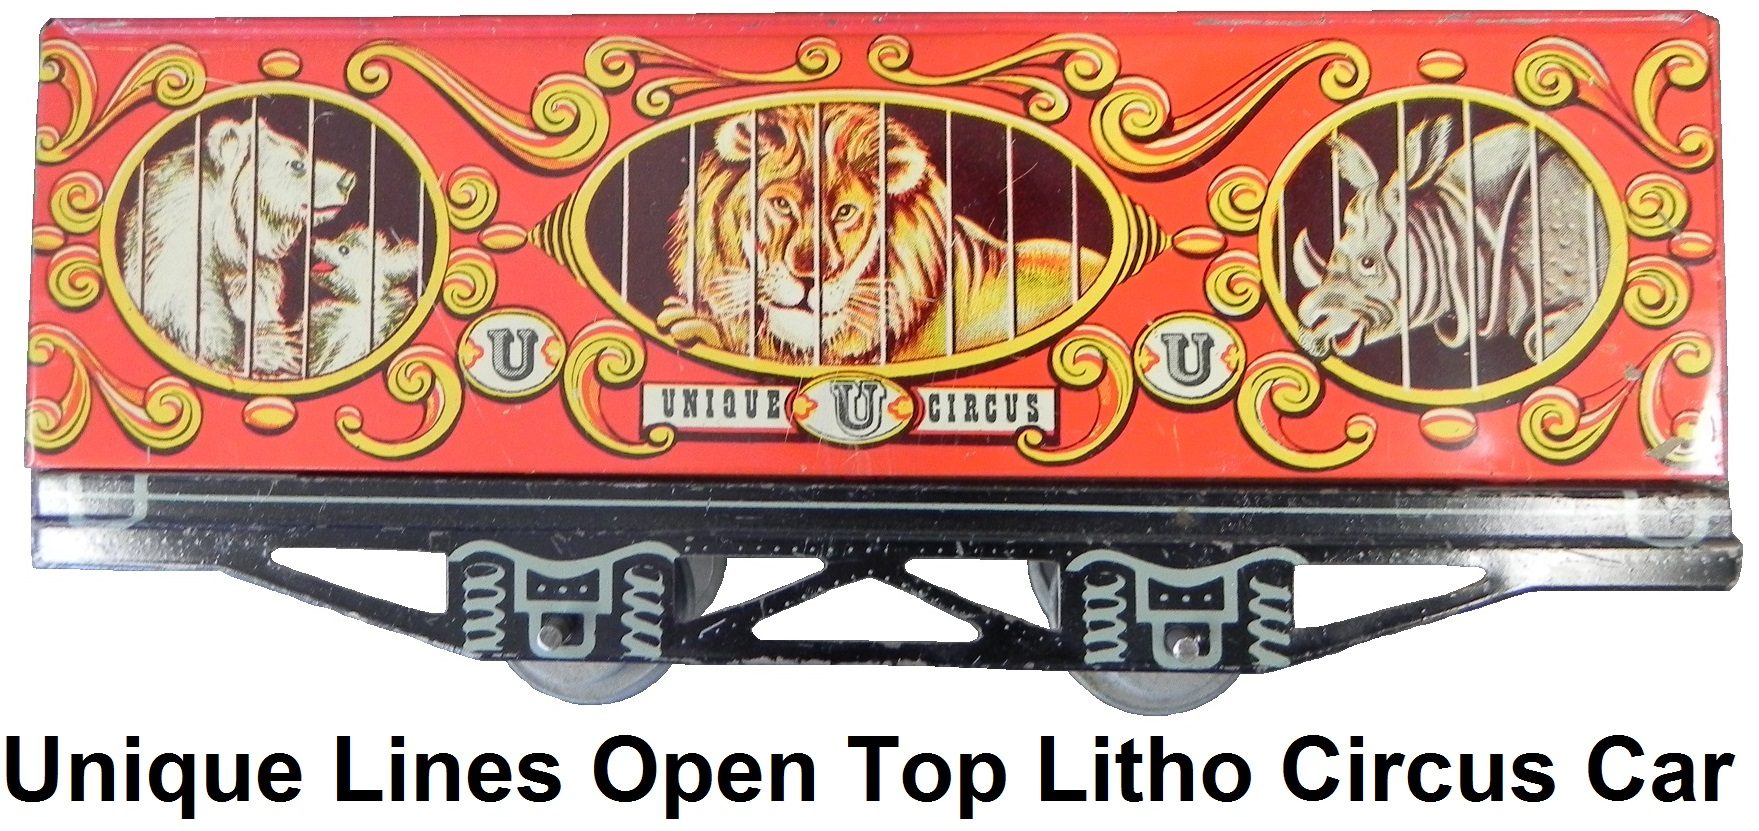 Unique Lines tinplate lithographed 'O' gauge circus car - Unique Lion version without roof